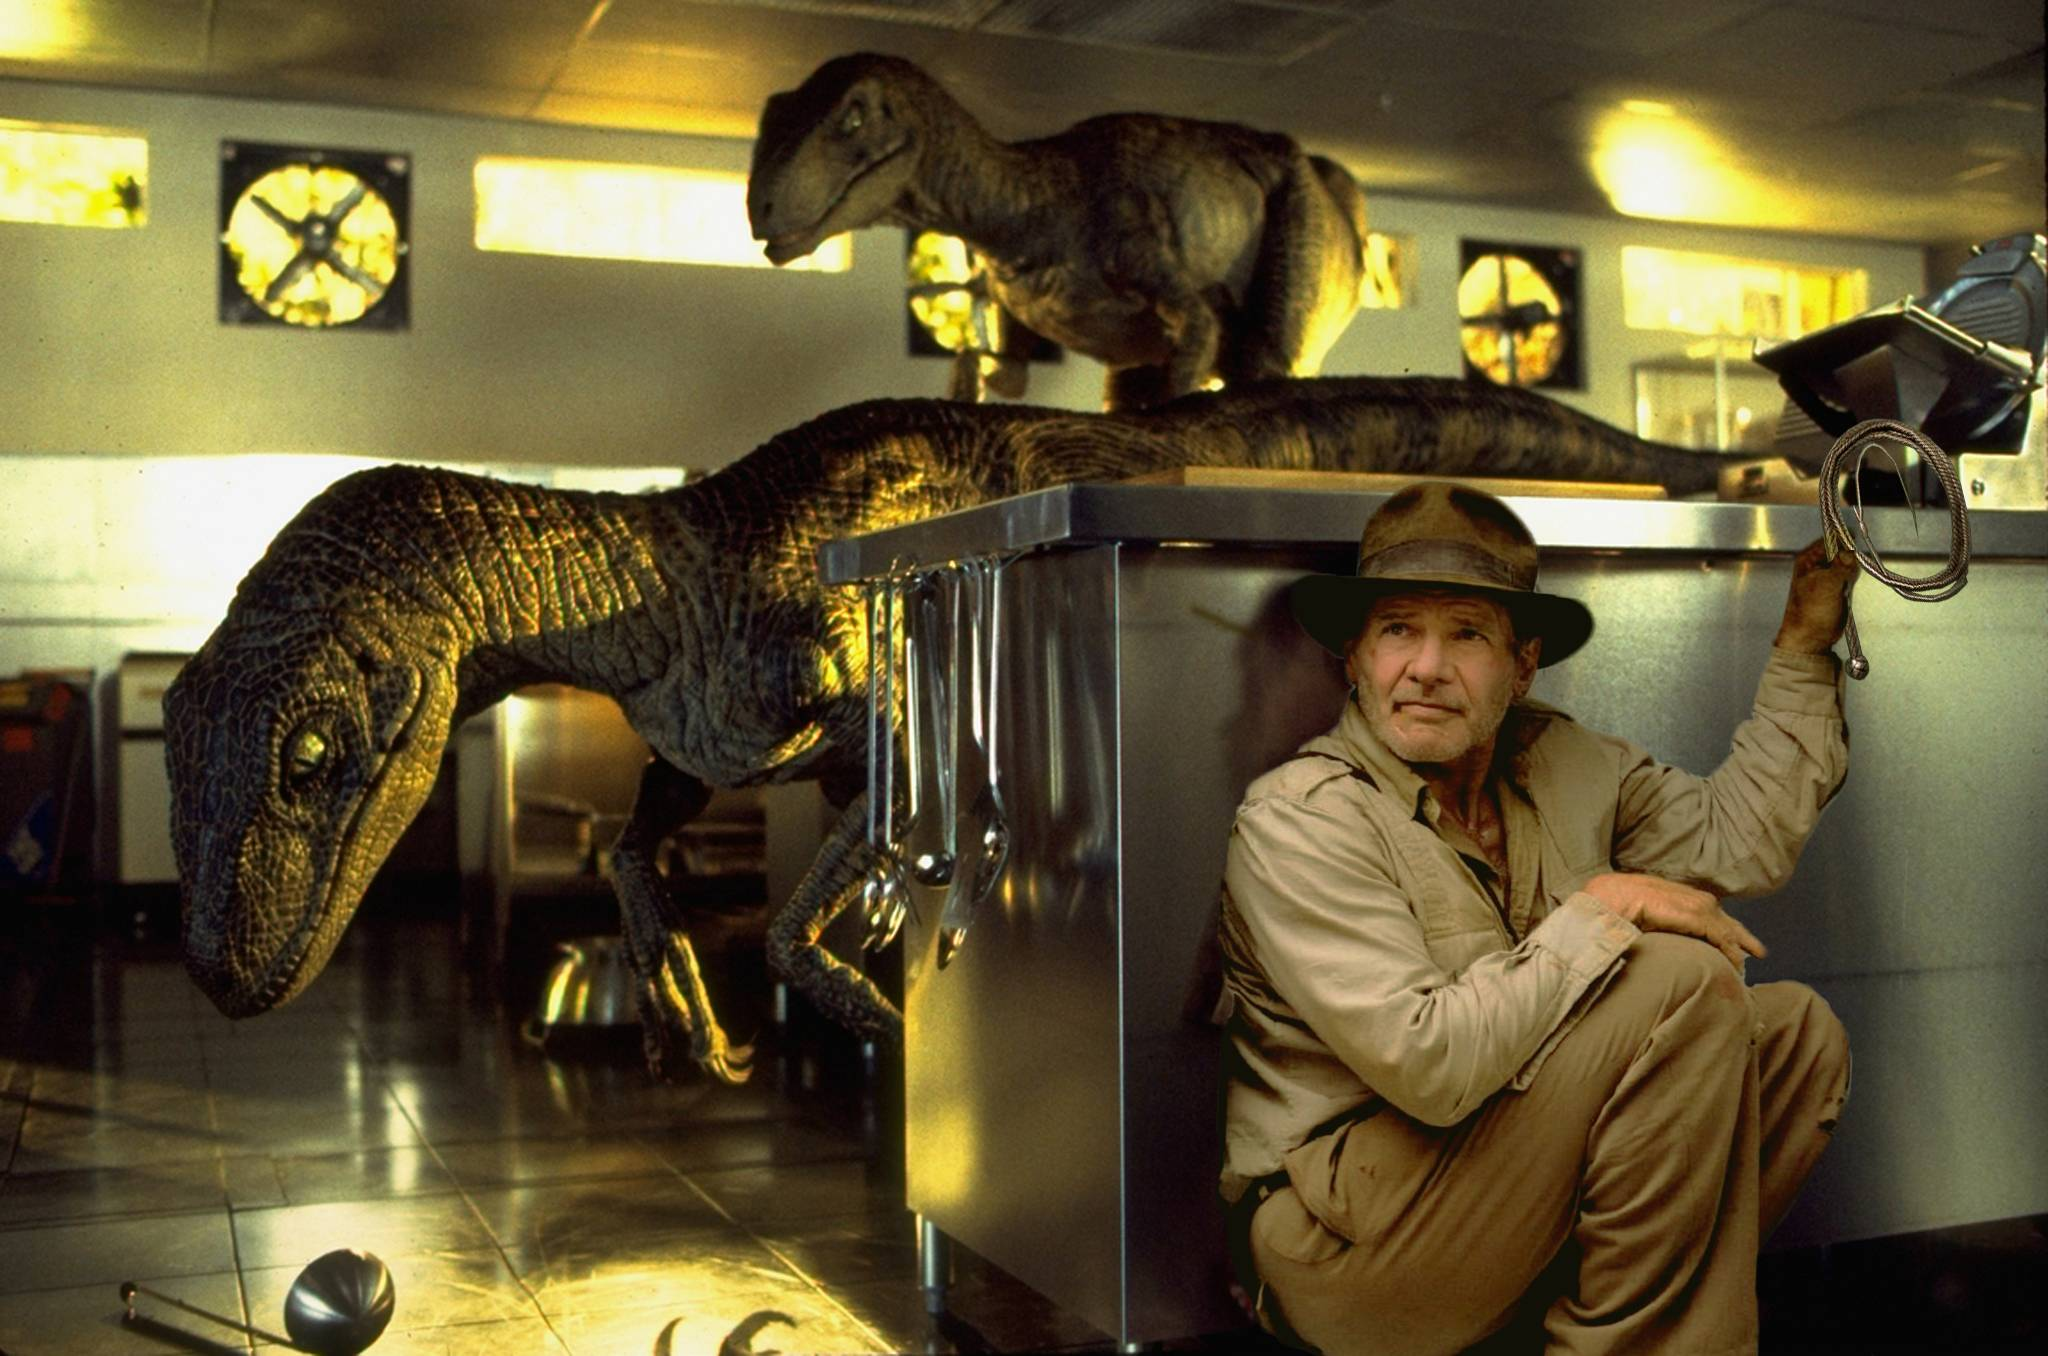 indiana jones fridge pose photoshop battle, indiana jones raptors jurassic park